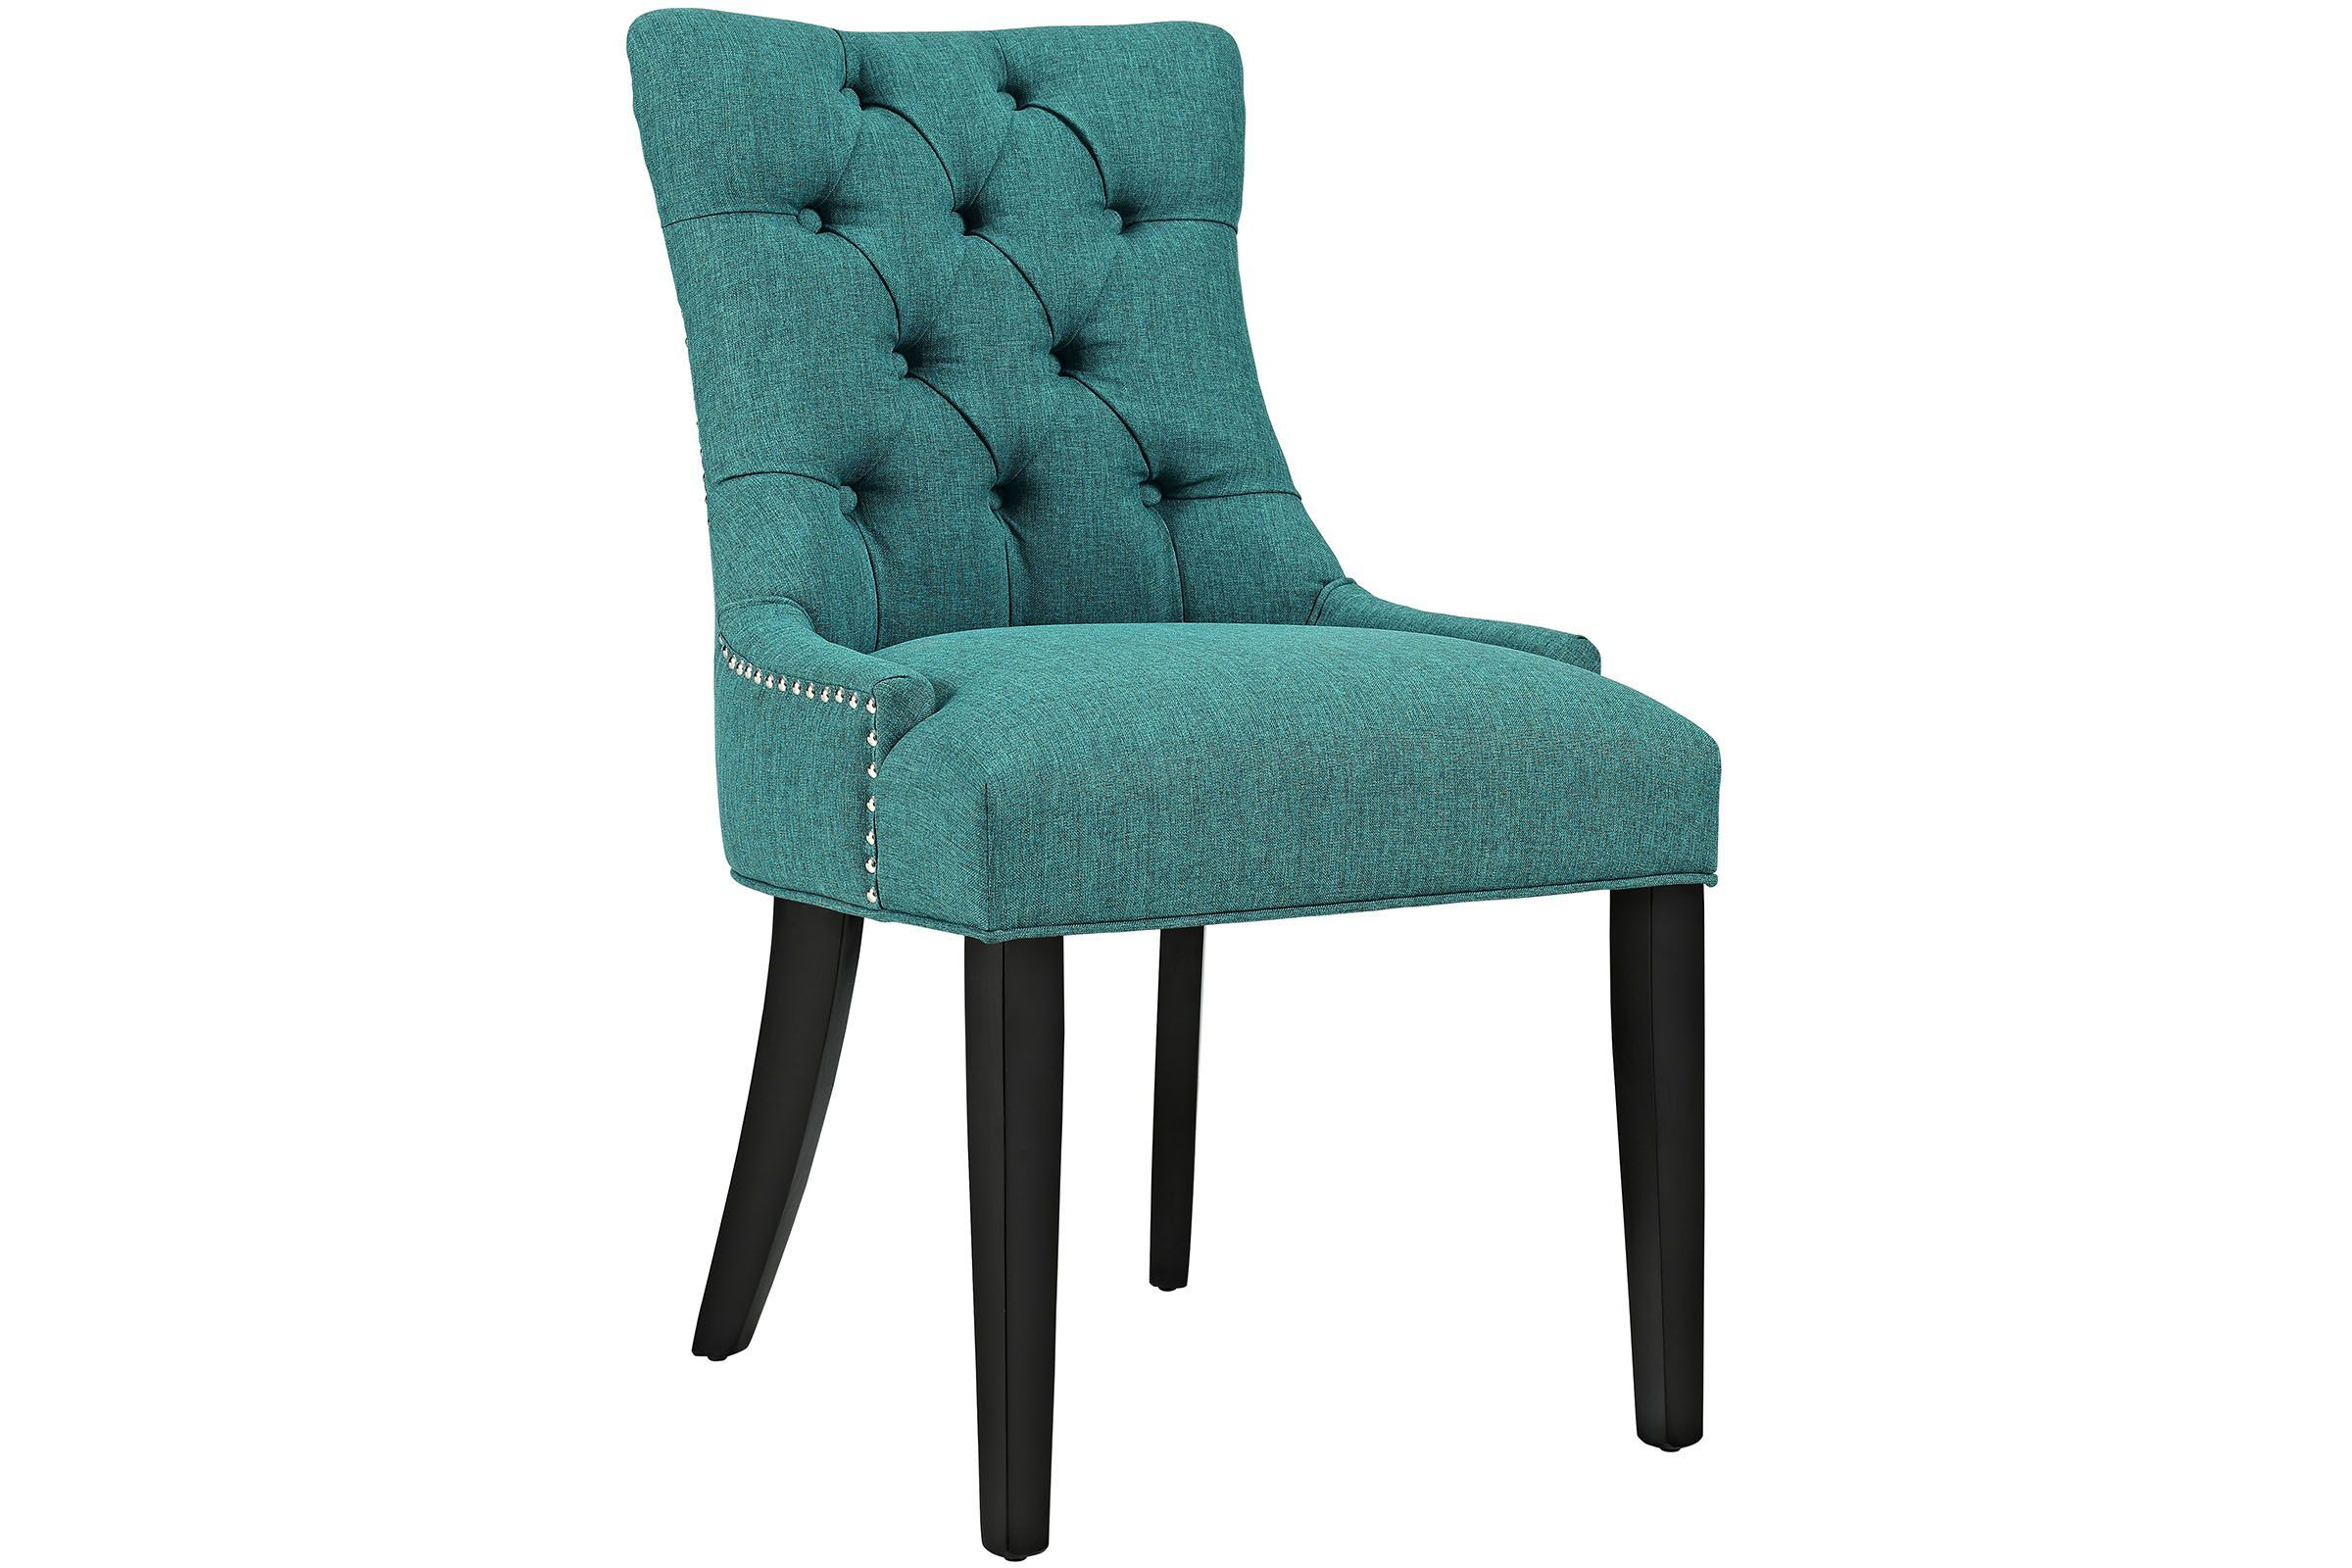 Regent Upholstered Dining Chair In Teal By Modway Chaises